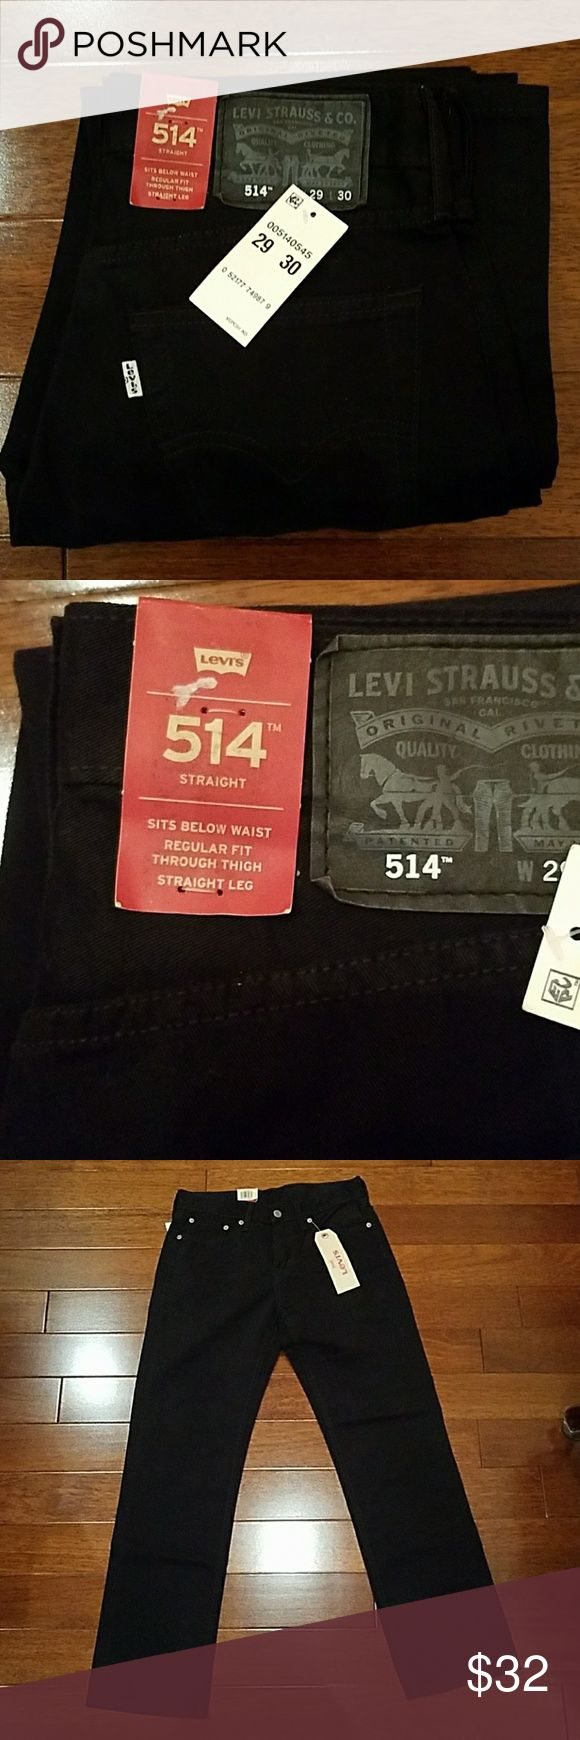 Men's Levi's Jeans 29x30 BRAND MEW WITH TAGS. Men's Levi's Jeans 29x30. 514 jeans, straight leg, but regular fot through thigh. Black color. Levi's Jeans Straight